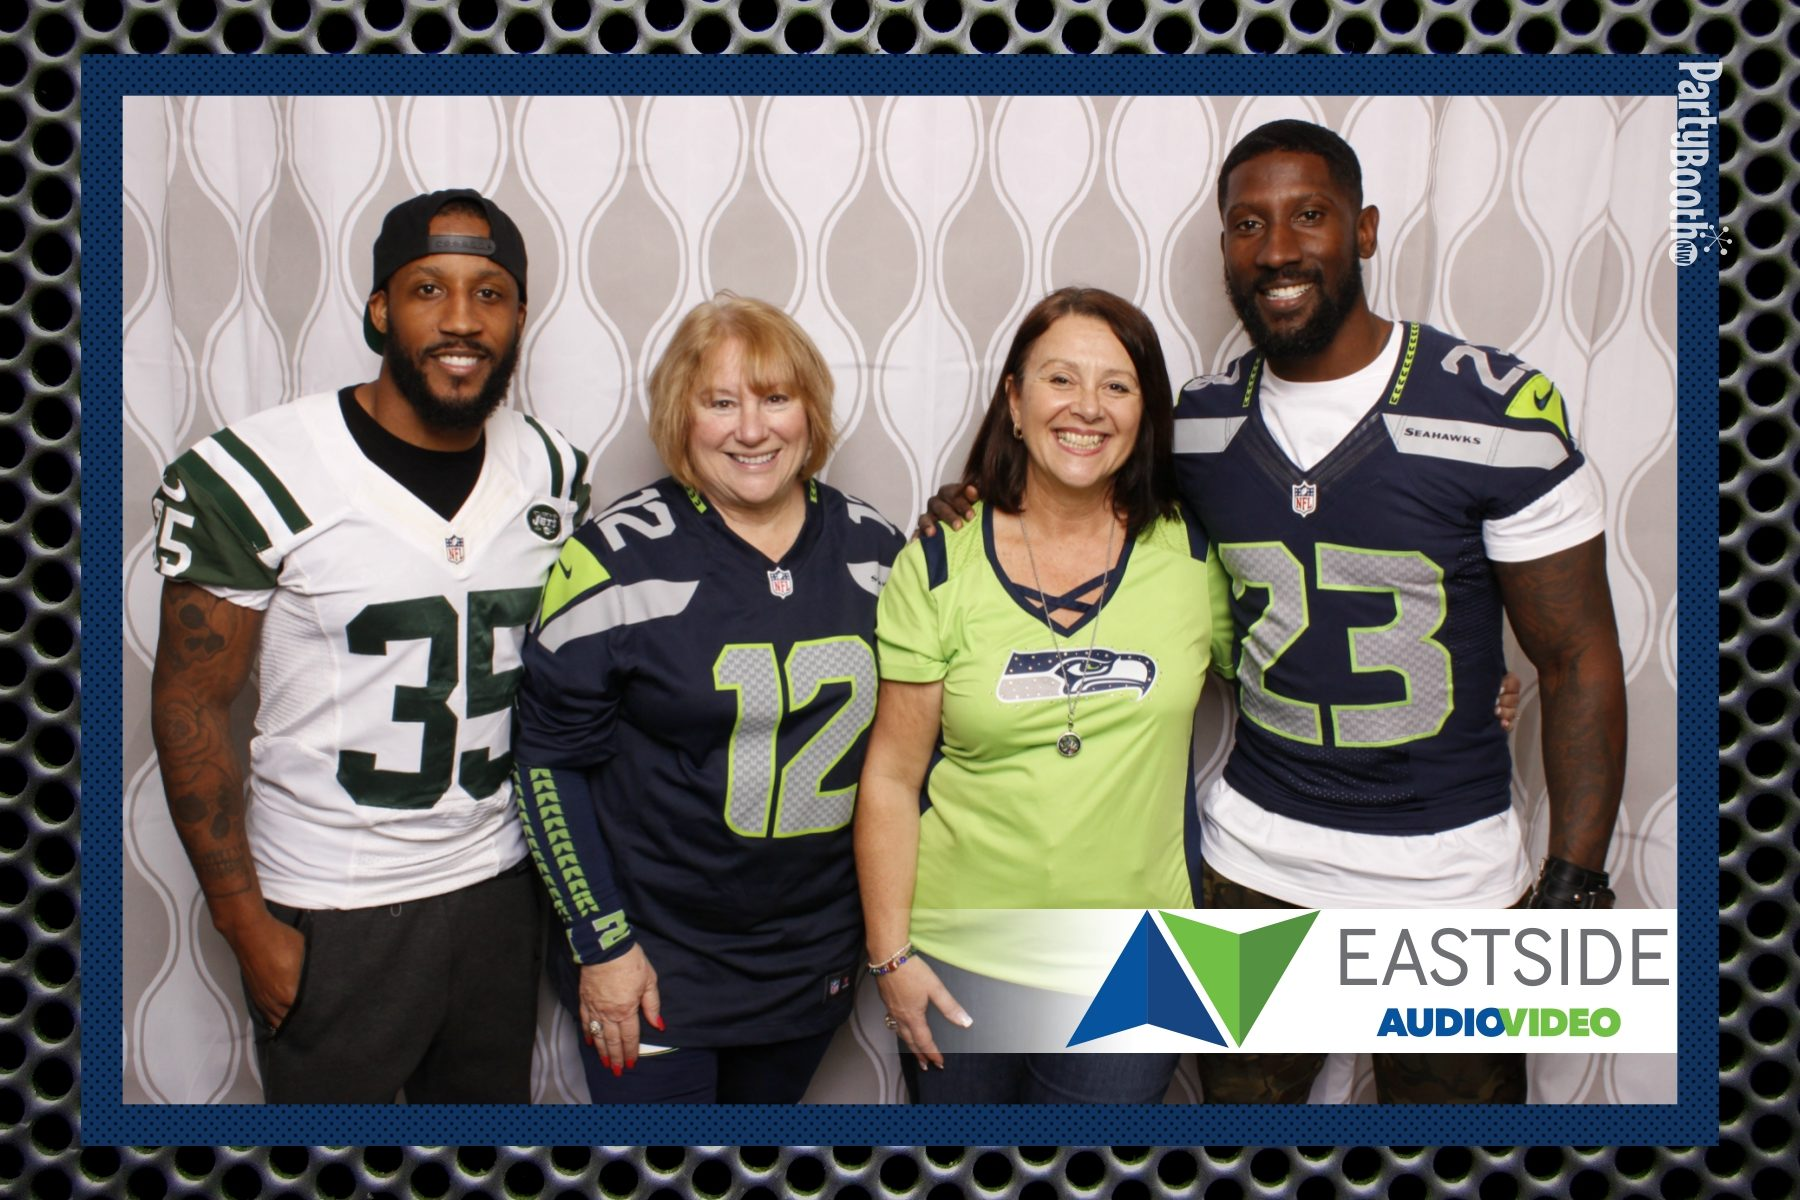 Eastside AV - The Premier Home Theater Installation Company in the NW - hosted their customers, clients, friends and family in their new showroom facility in Bellevue, WA to see the latest in AV and Home Theater technology, and to watch the Seattle Seahawks game on the big screen! Seattle Photo Booth © 2016 PartyBoothNW.com